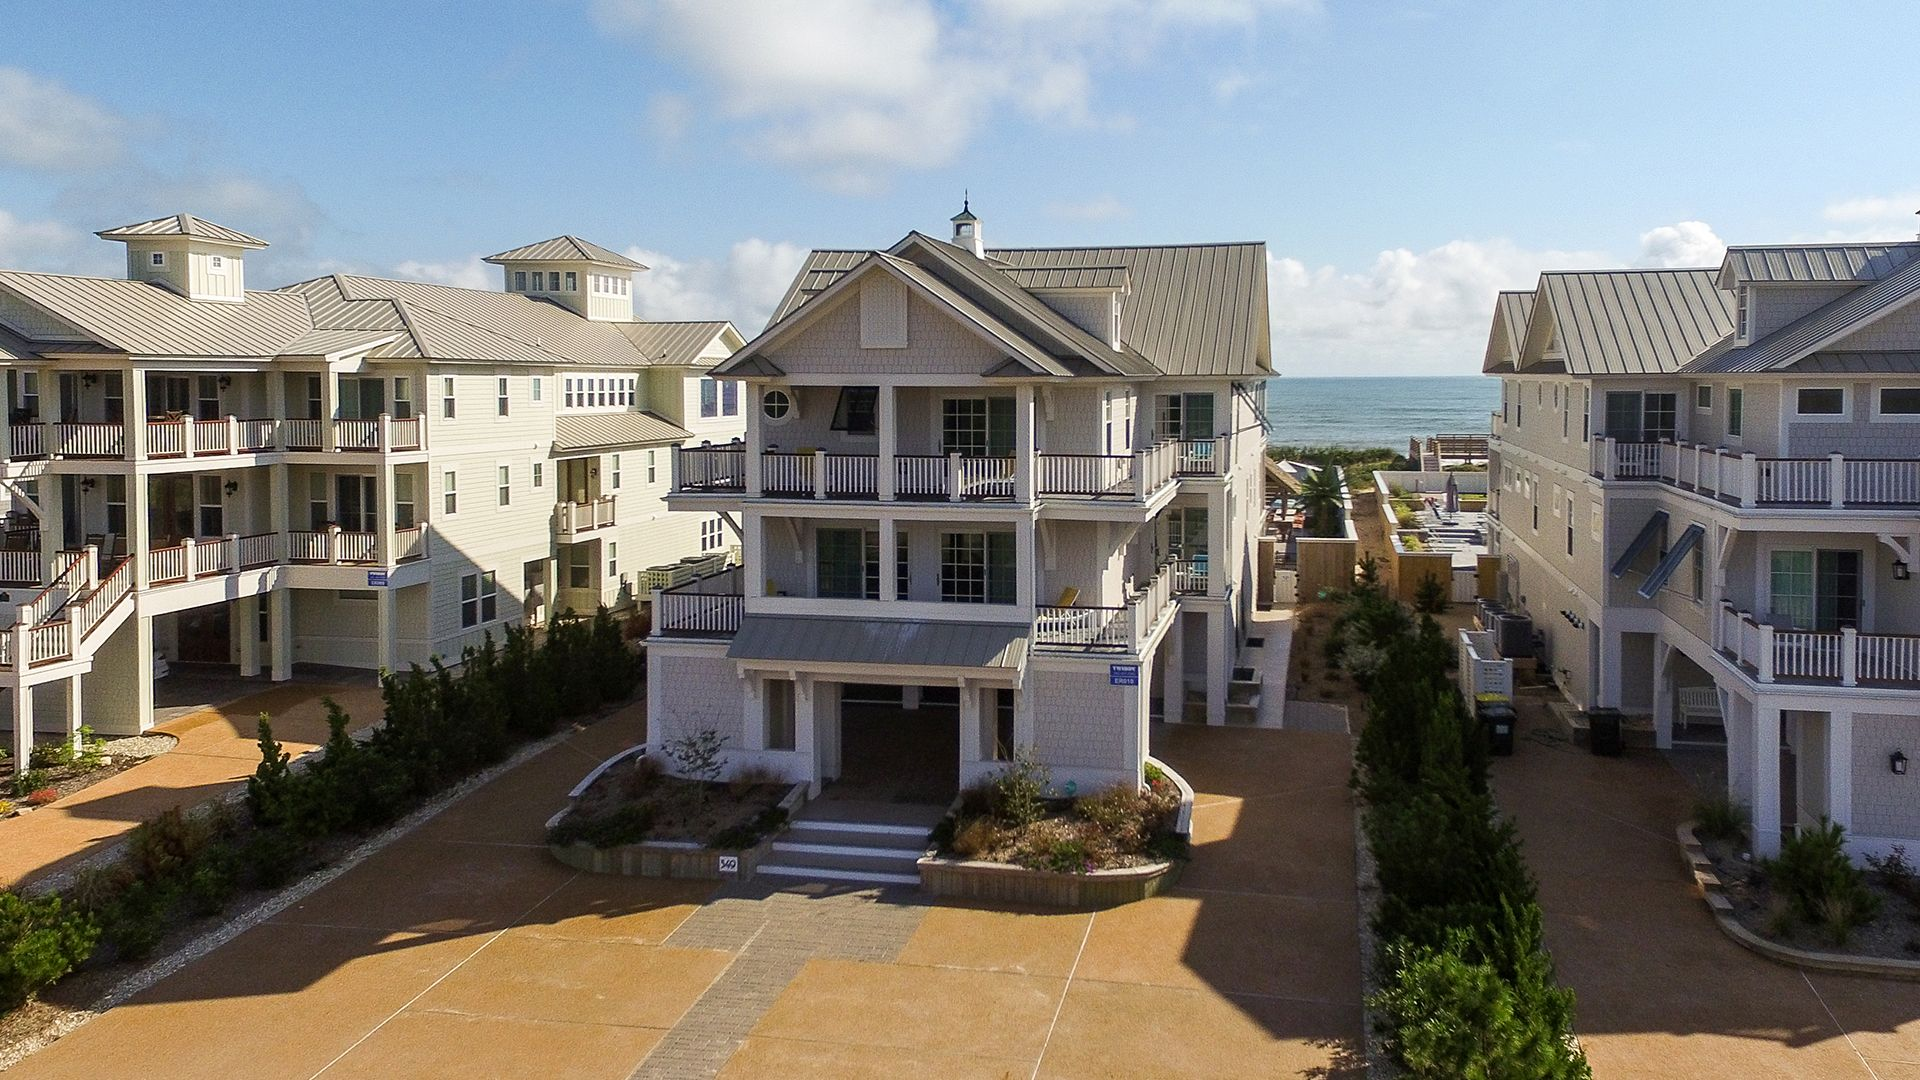 The Ocean Club of OBX | Vacationrental | Oceanfront vacation